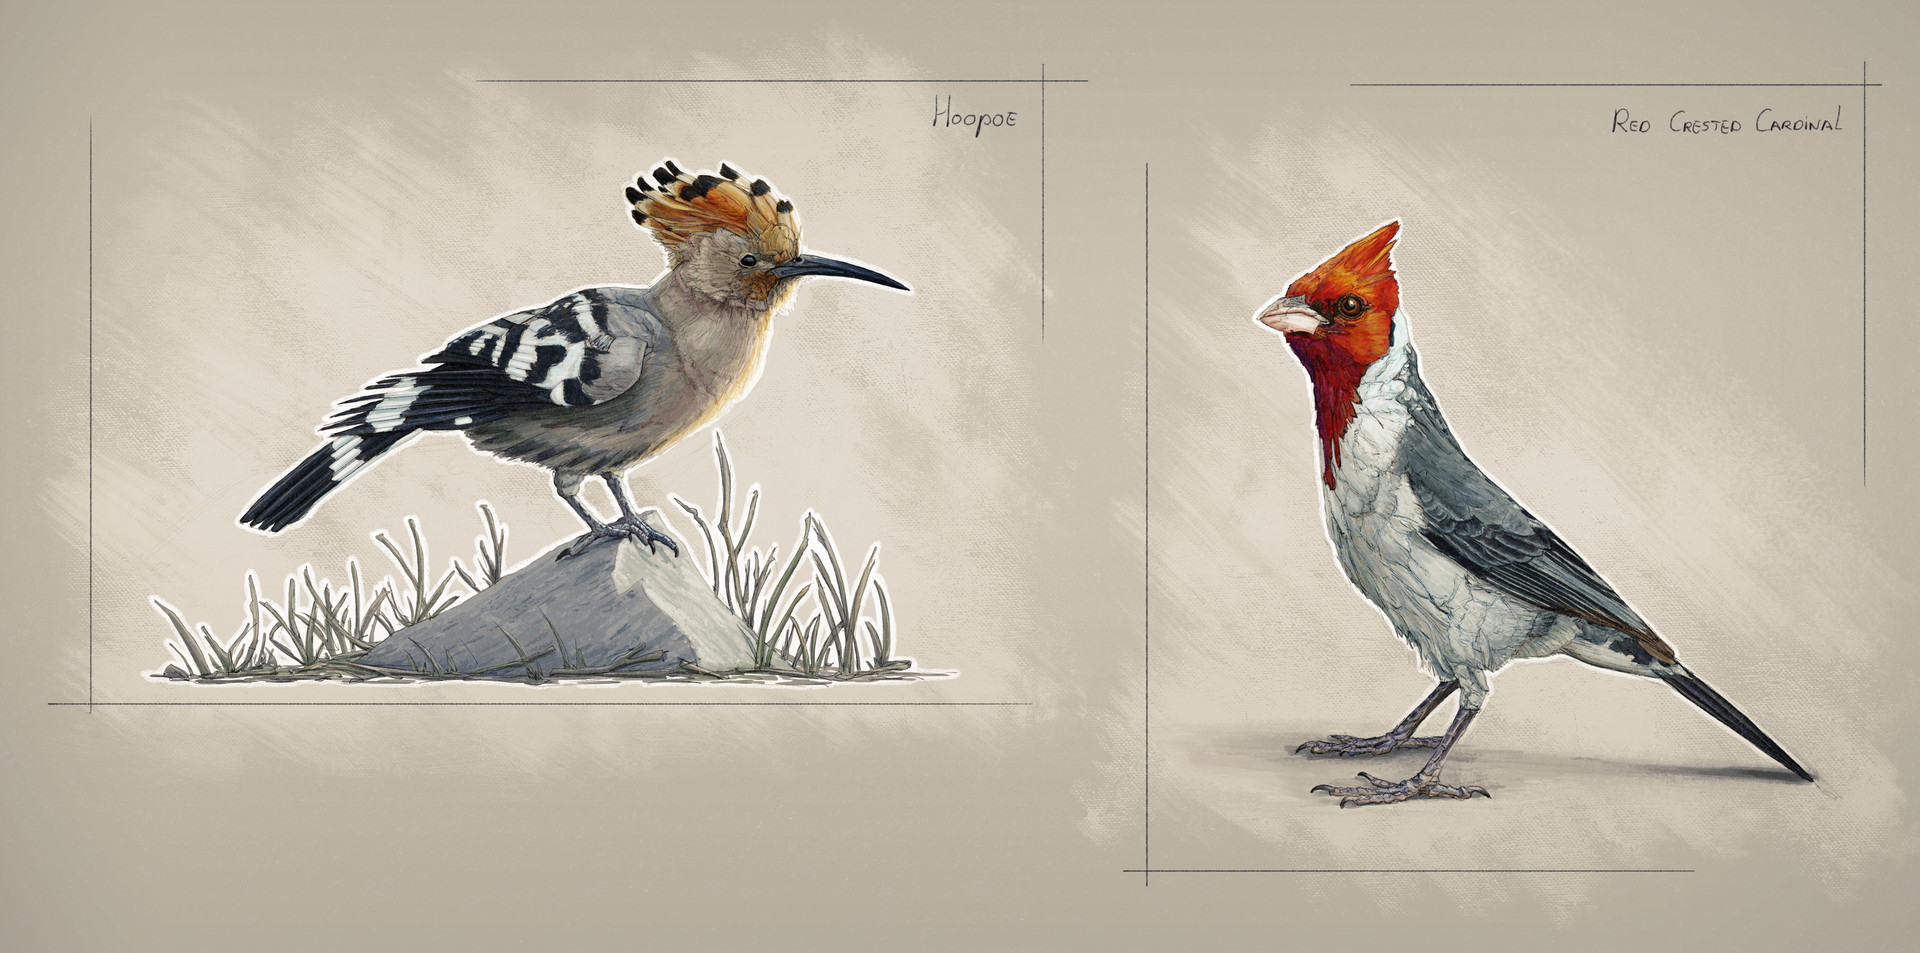 Jordi van hees lesson 3 animal observational sketches 2